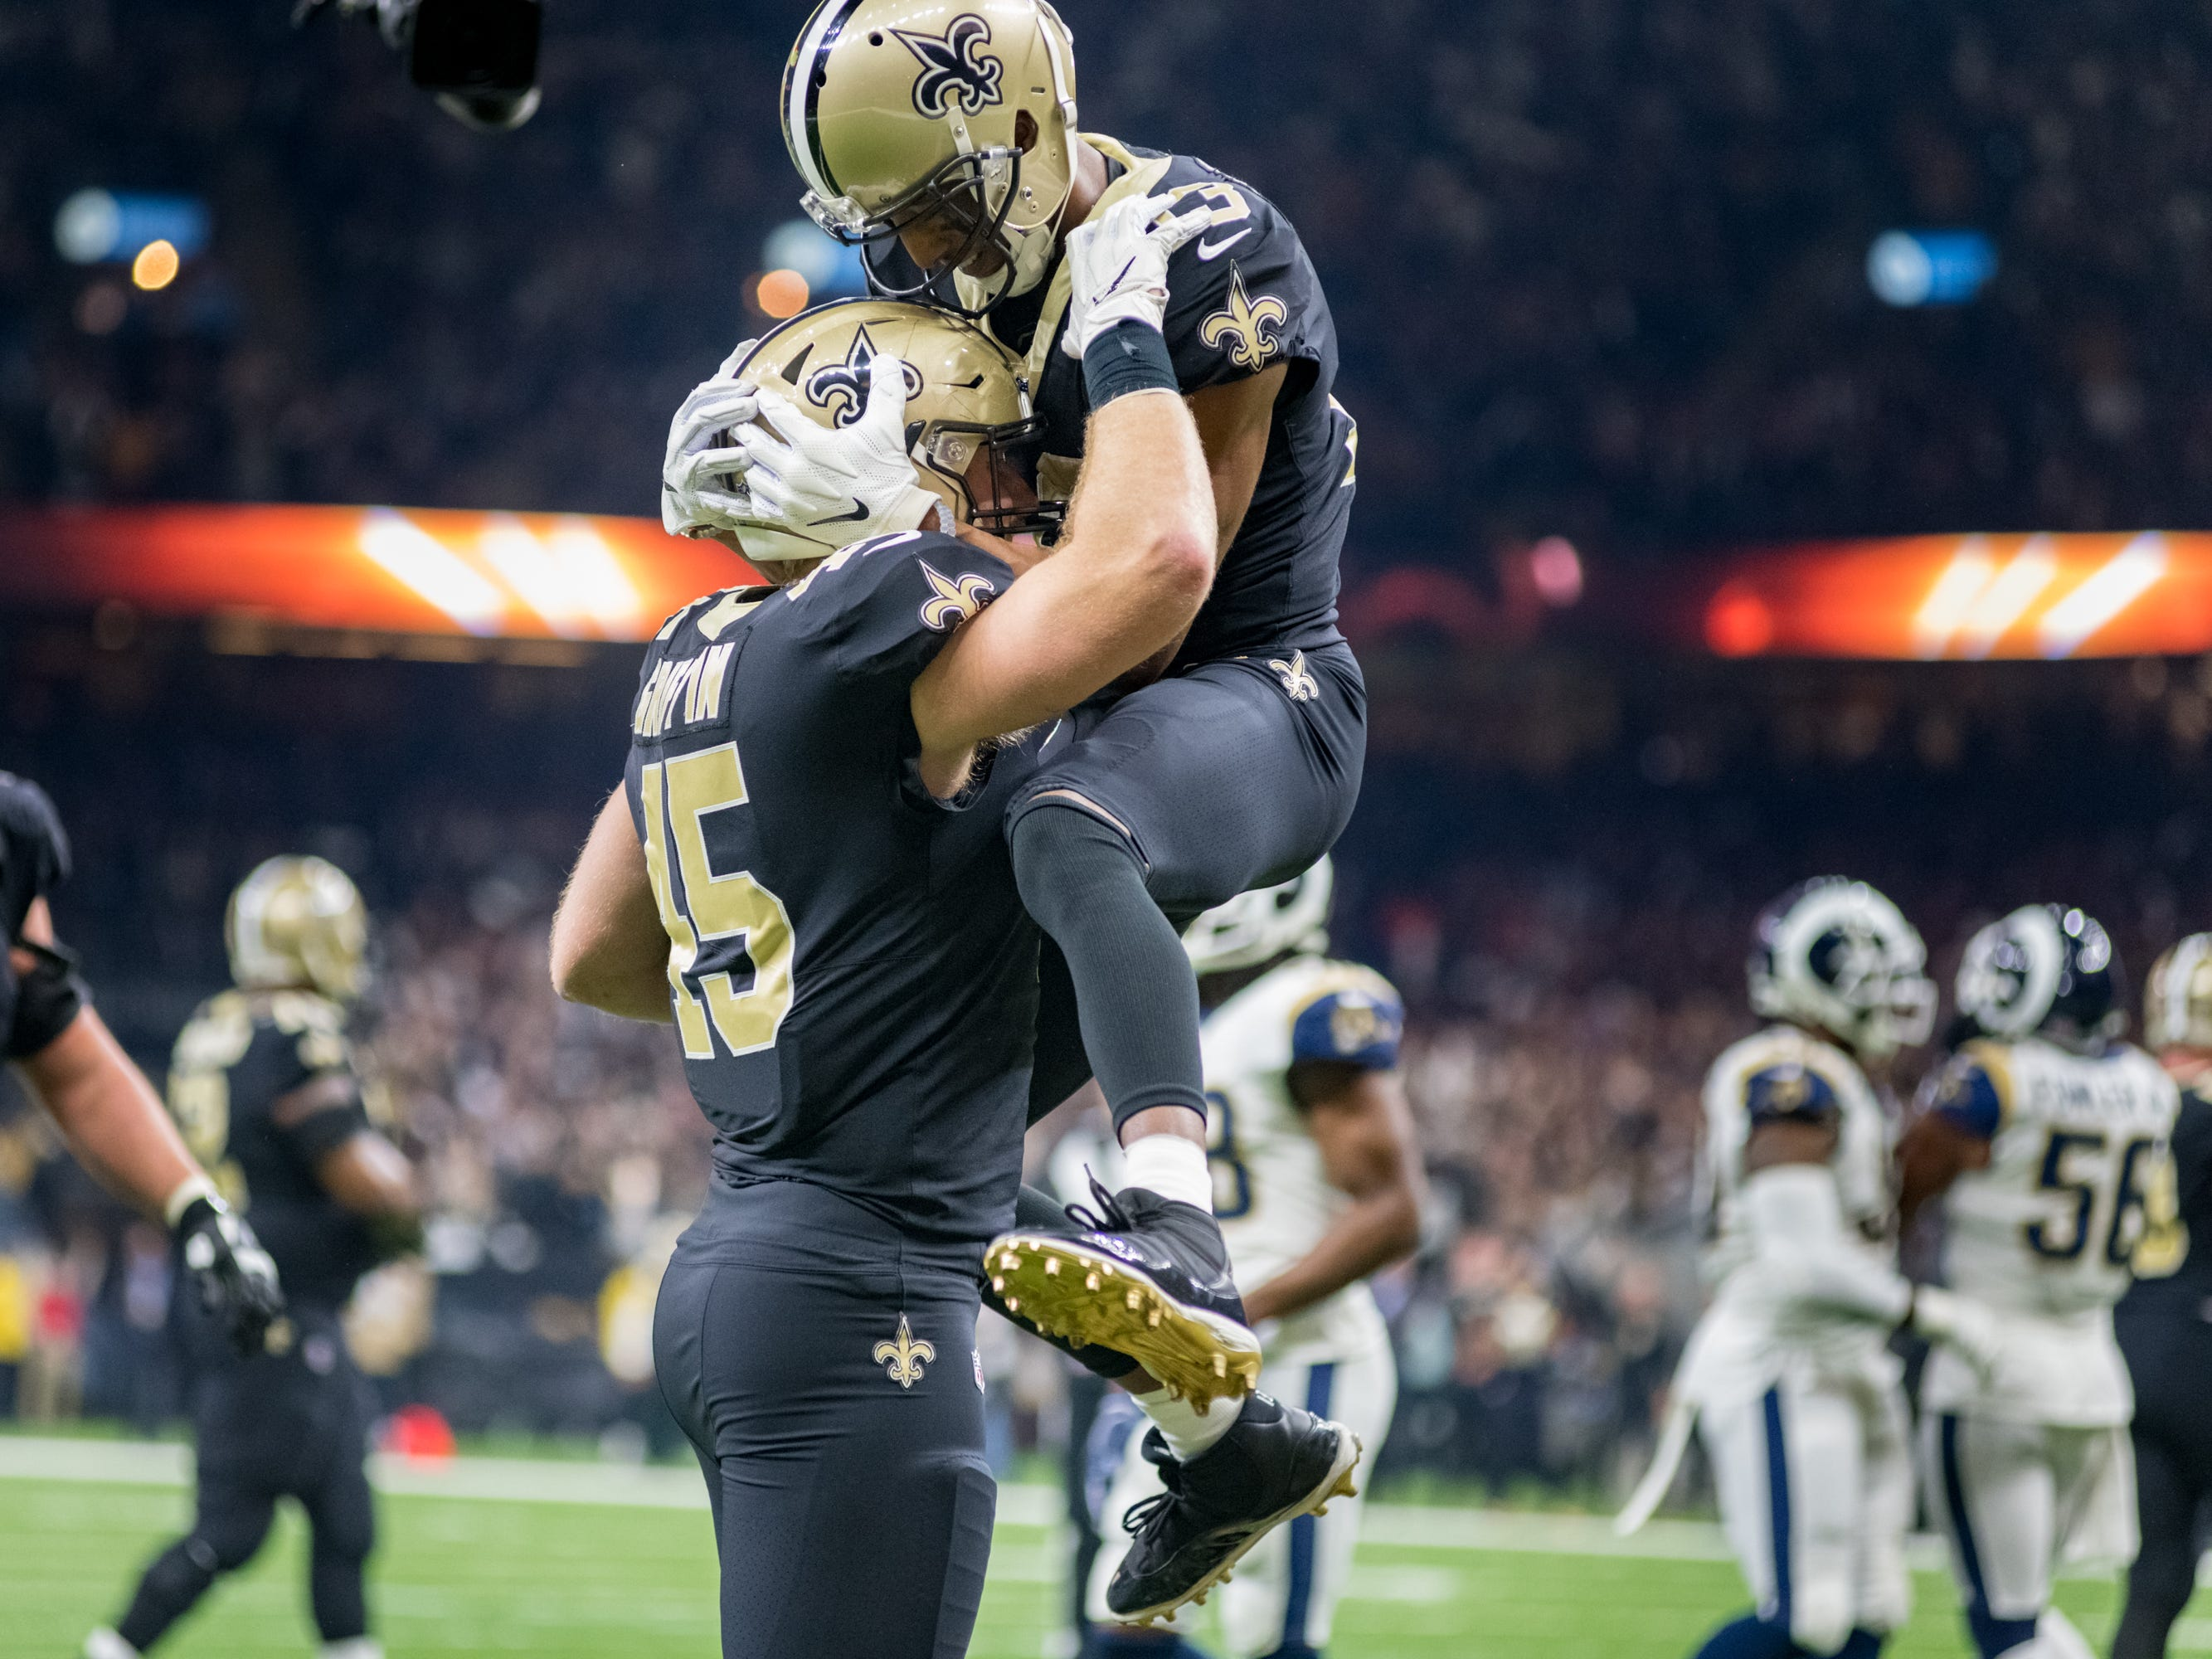 Michael Thomas celebrates a Garrett Griffin touchdown during the NFC Championship playoff football game between the New Orleans Saints and the Los Angeles Rams at the Mercedes-Benz Superdome in New Orleans. Sunday, Jan. 20, 2019.